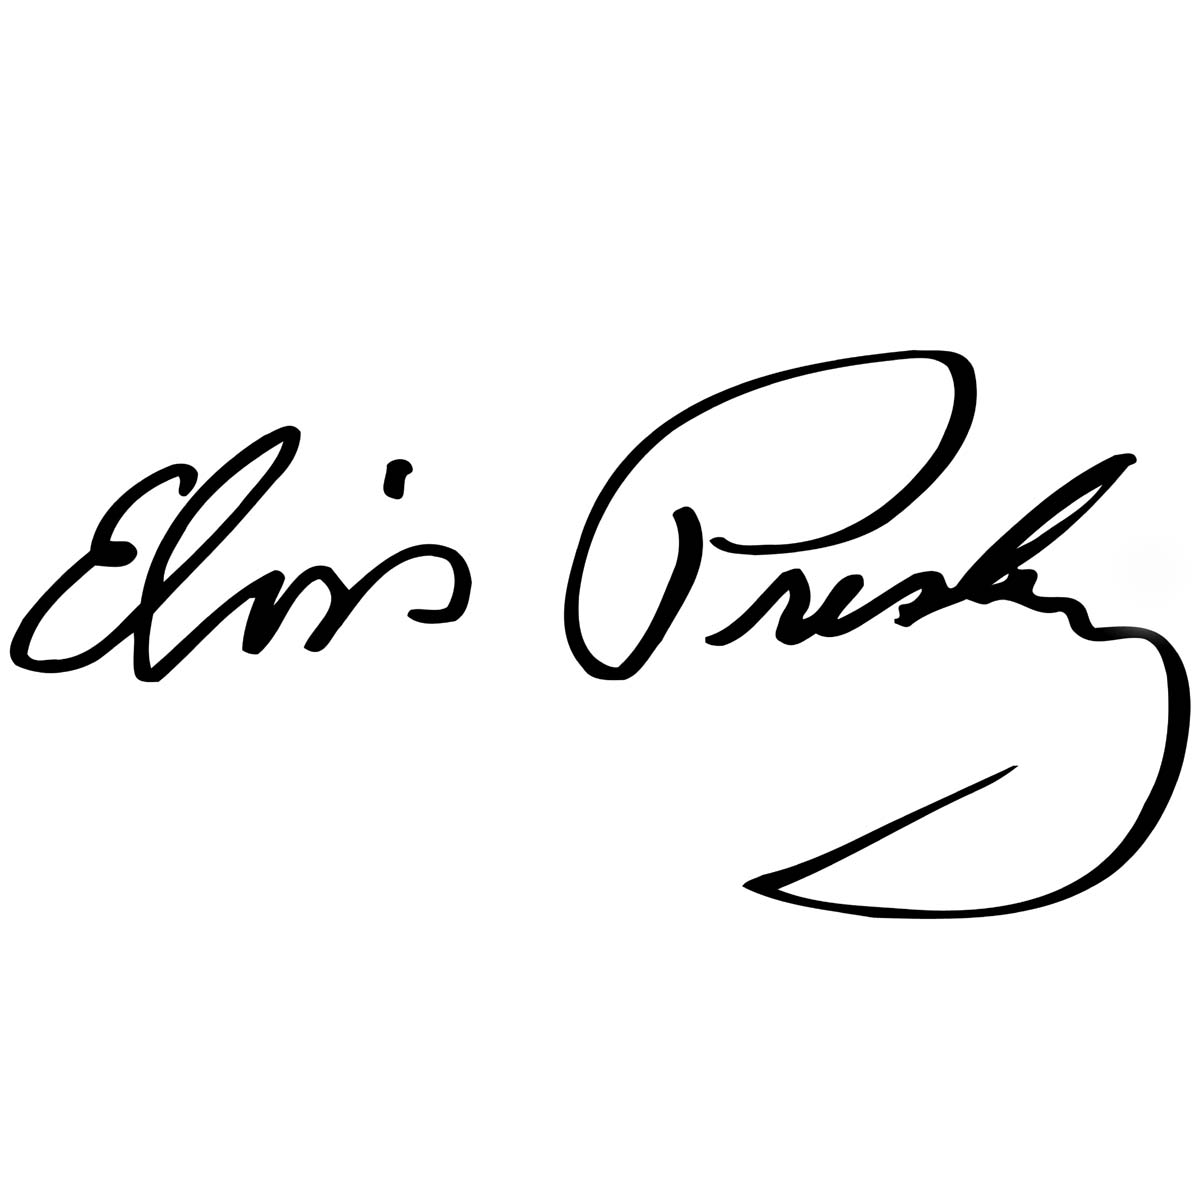 Elvis Presley Signature Waterslide Decal